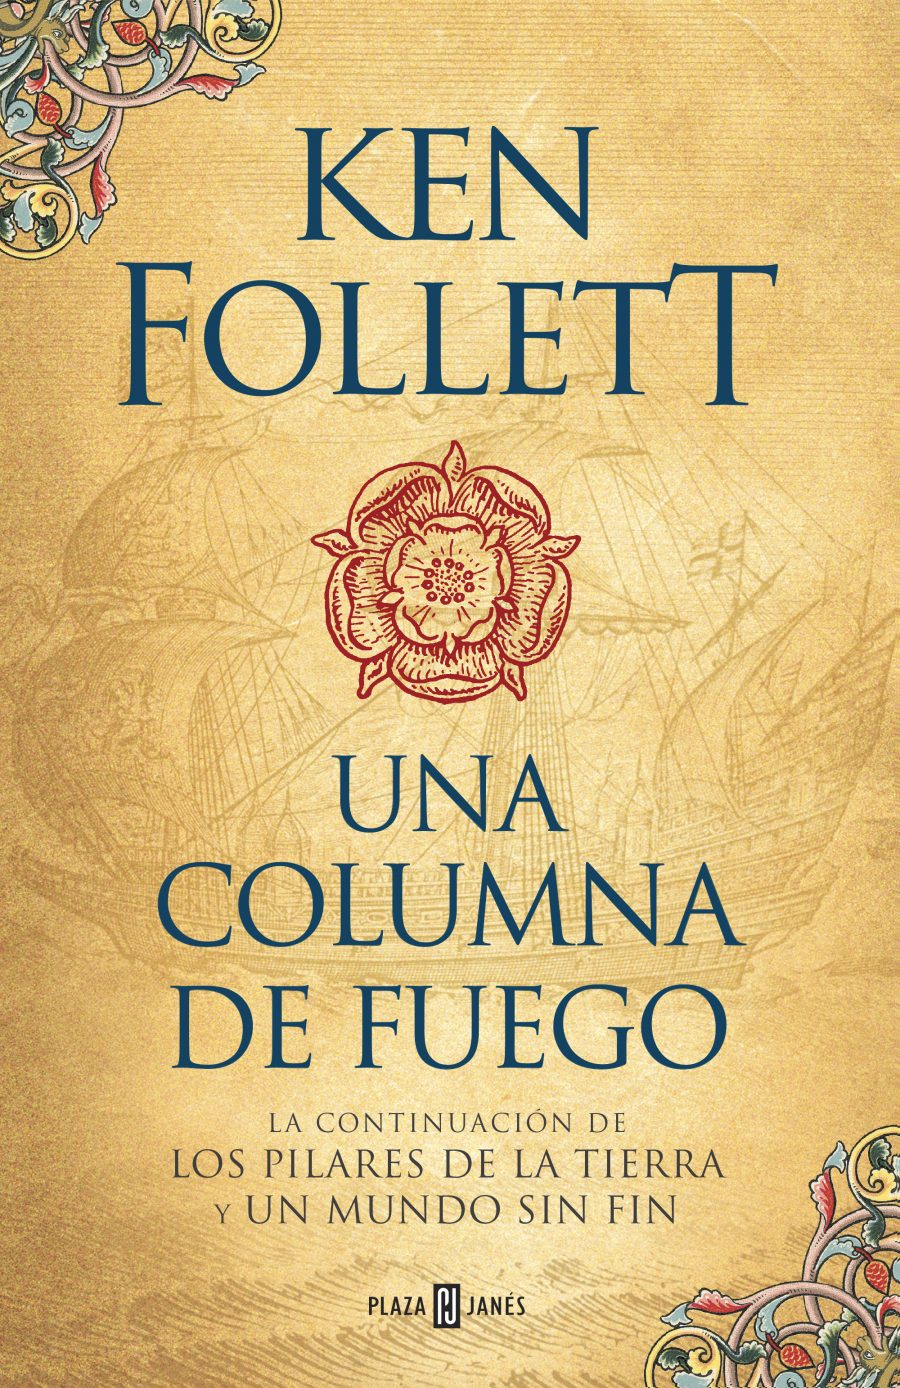 Atrapalibros, Ken Follett